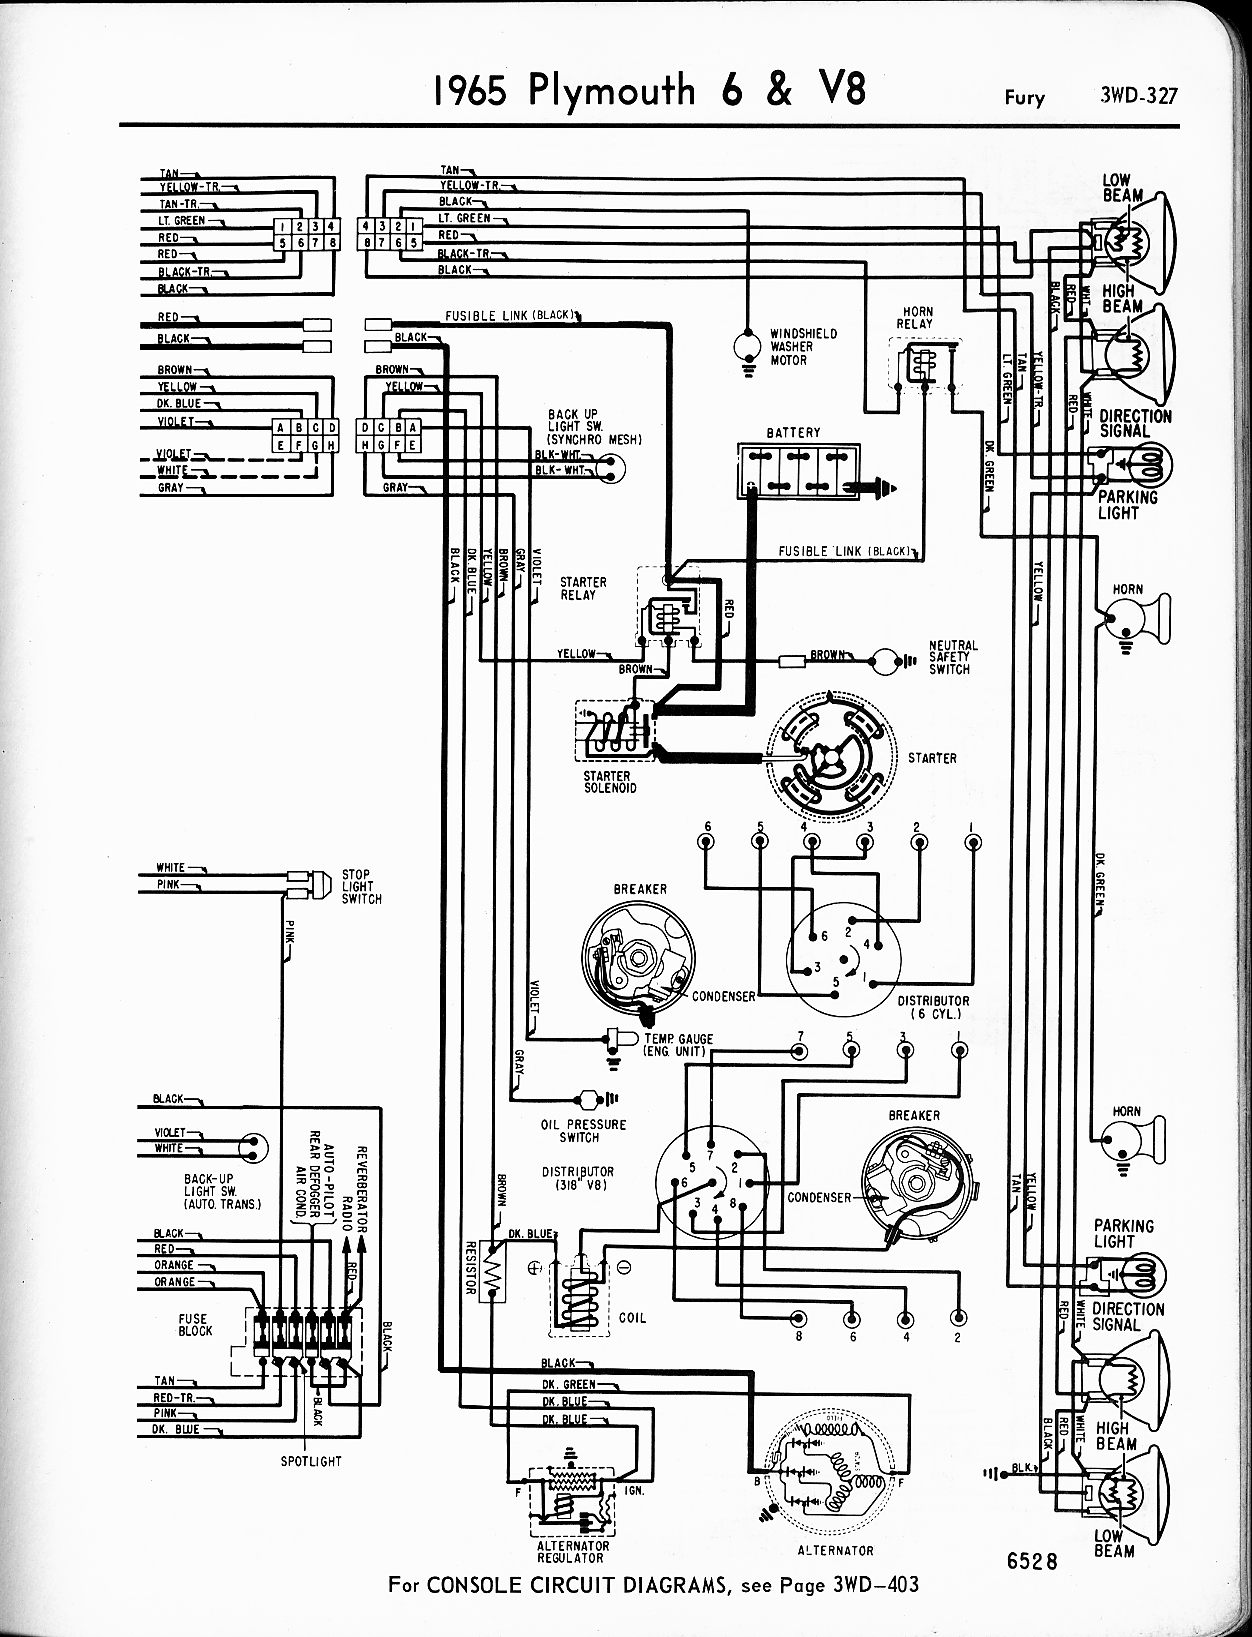 1950 plymouth horn wiring diagram electrical work wiring diagram u2022 rh aglabs co